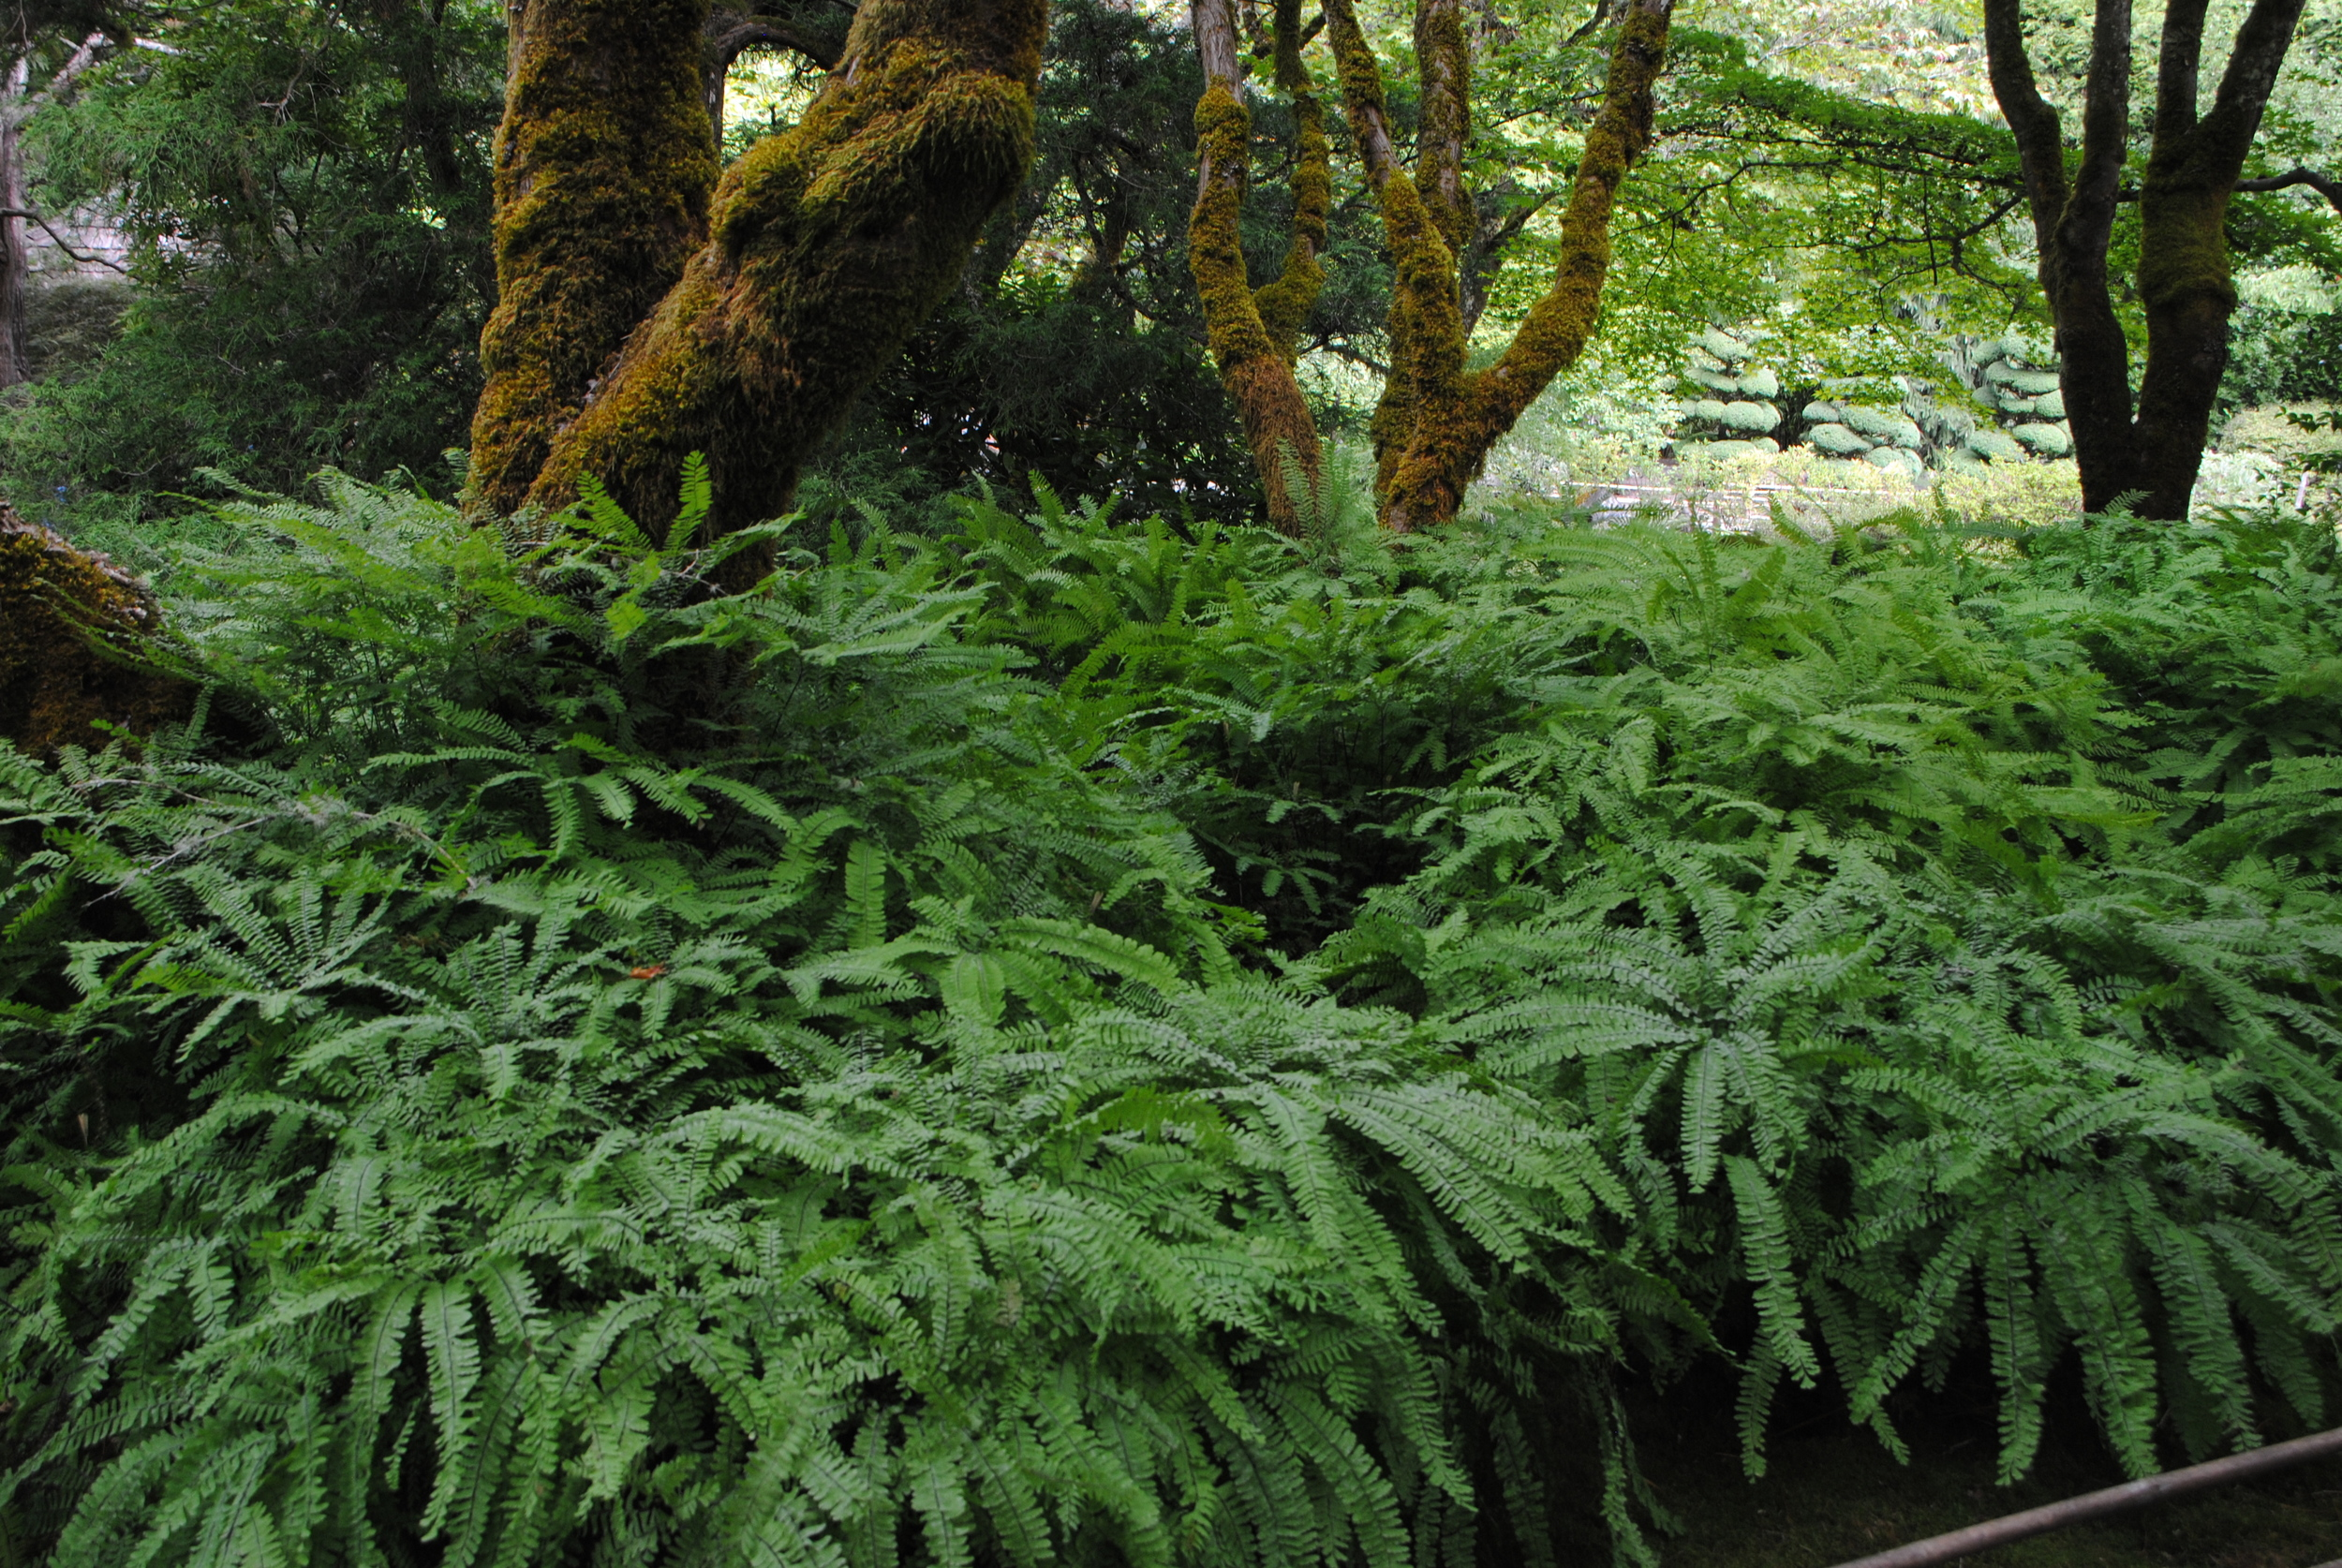 Massive maidenhair ferns in the Japanese Garden.